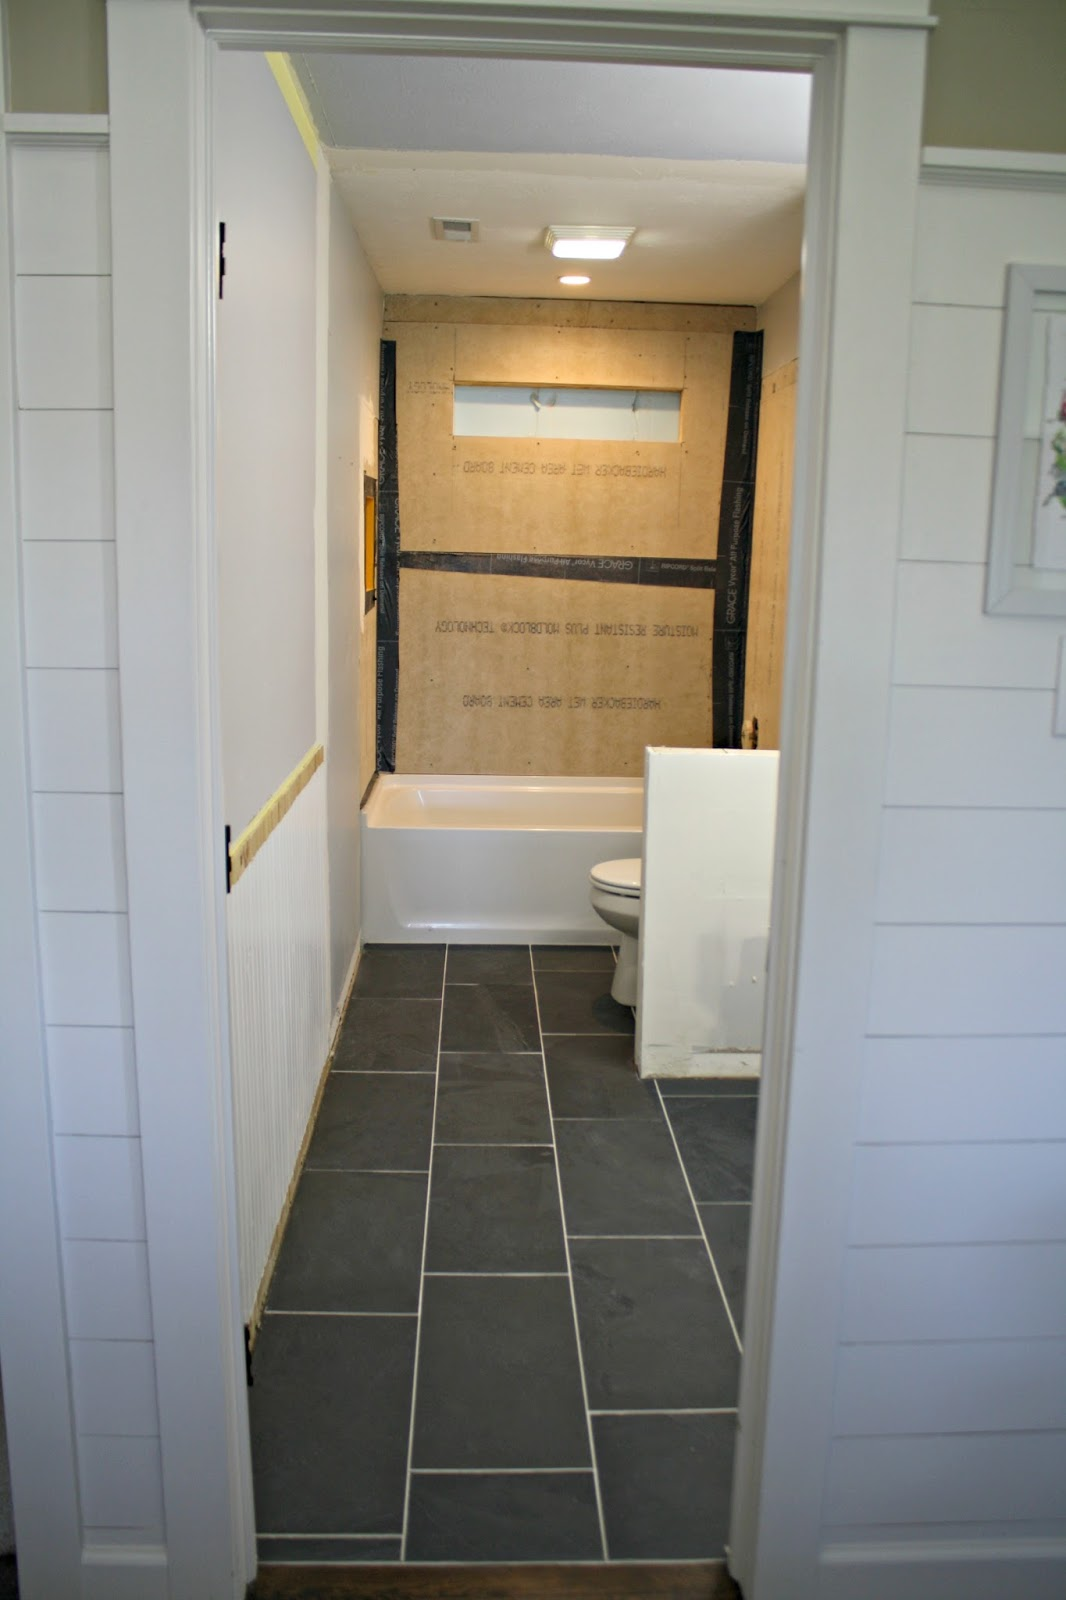 The best part of the bathroom reno from thrifty decor chick for Floor decor reno